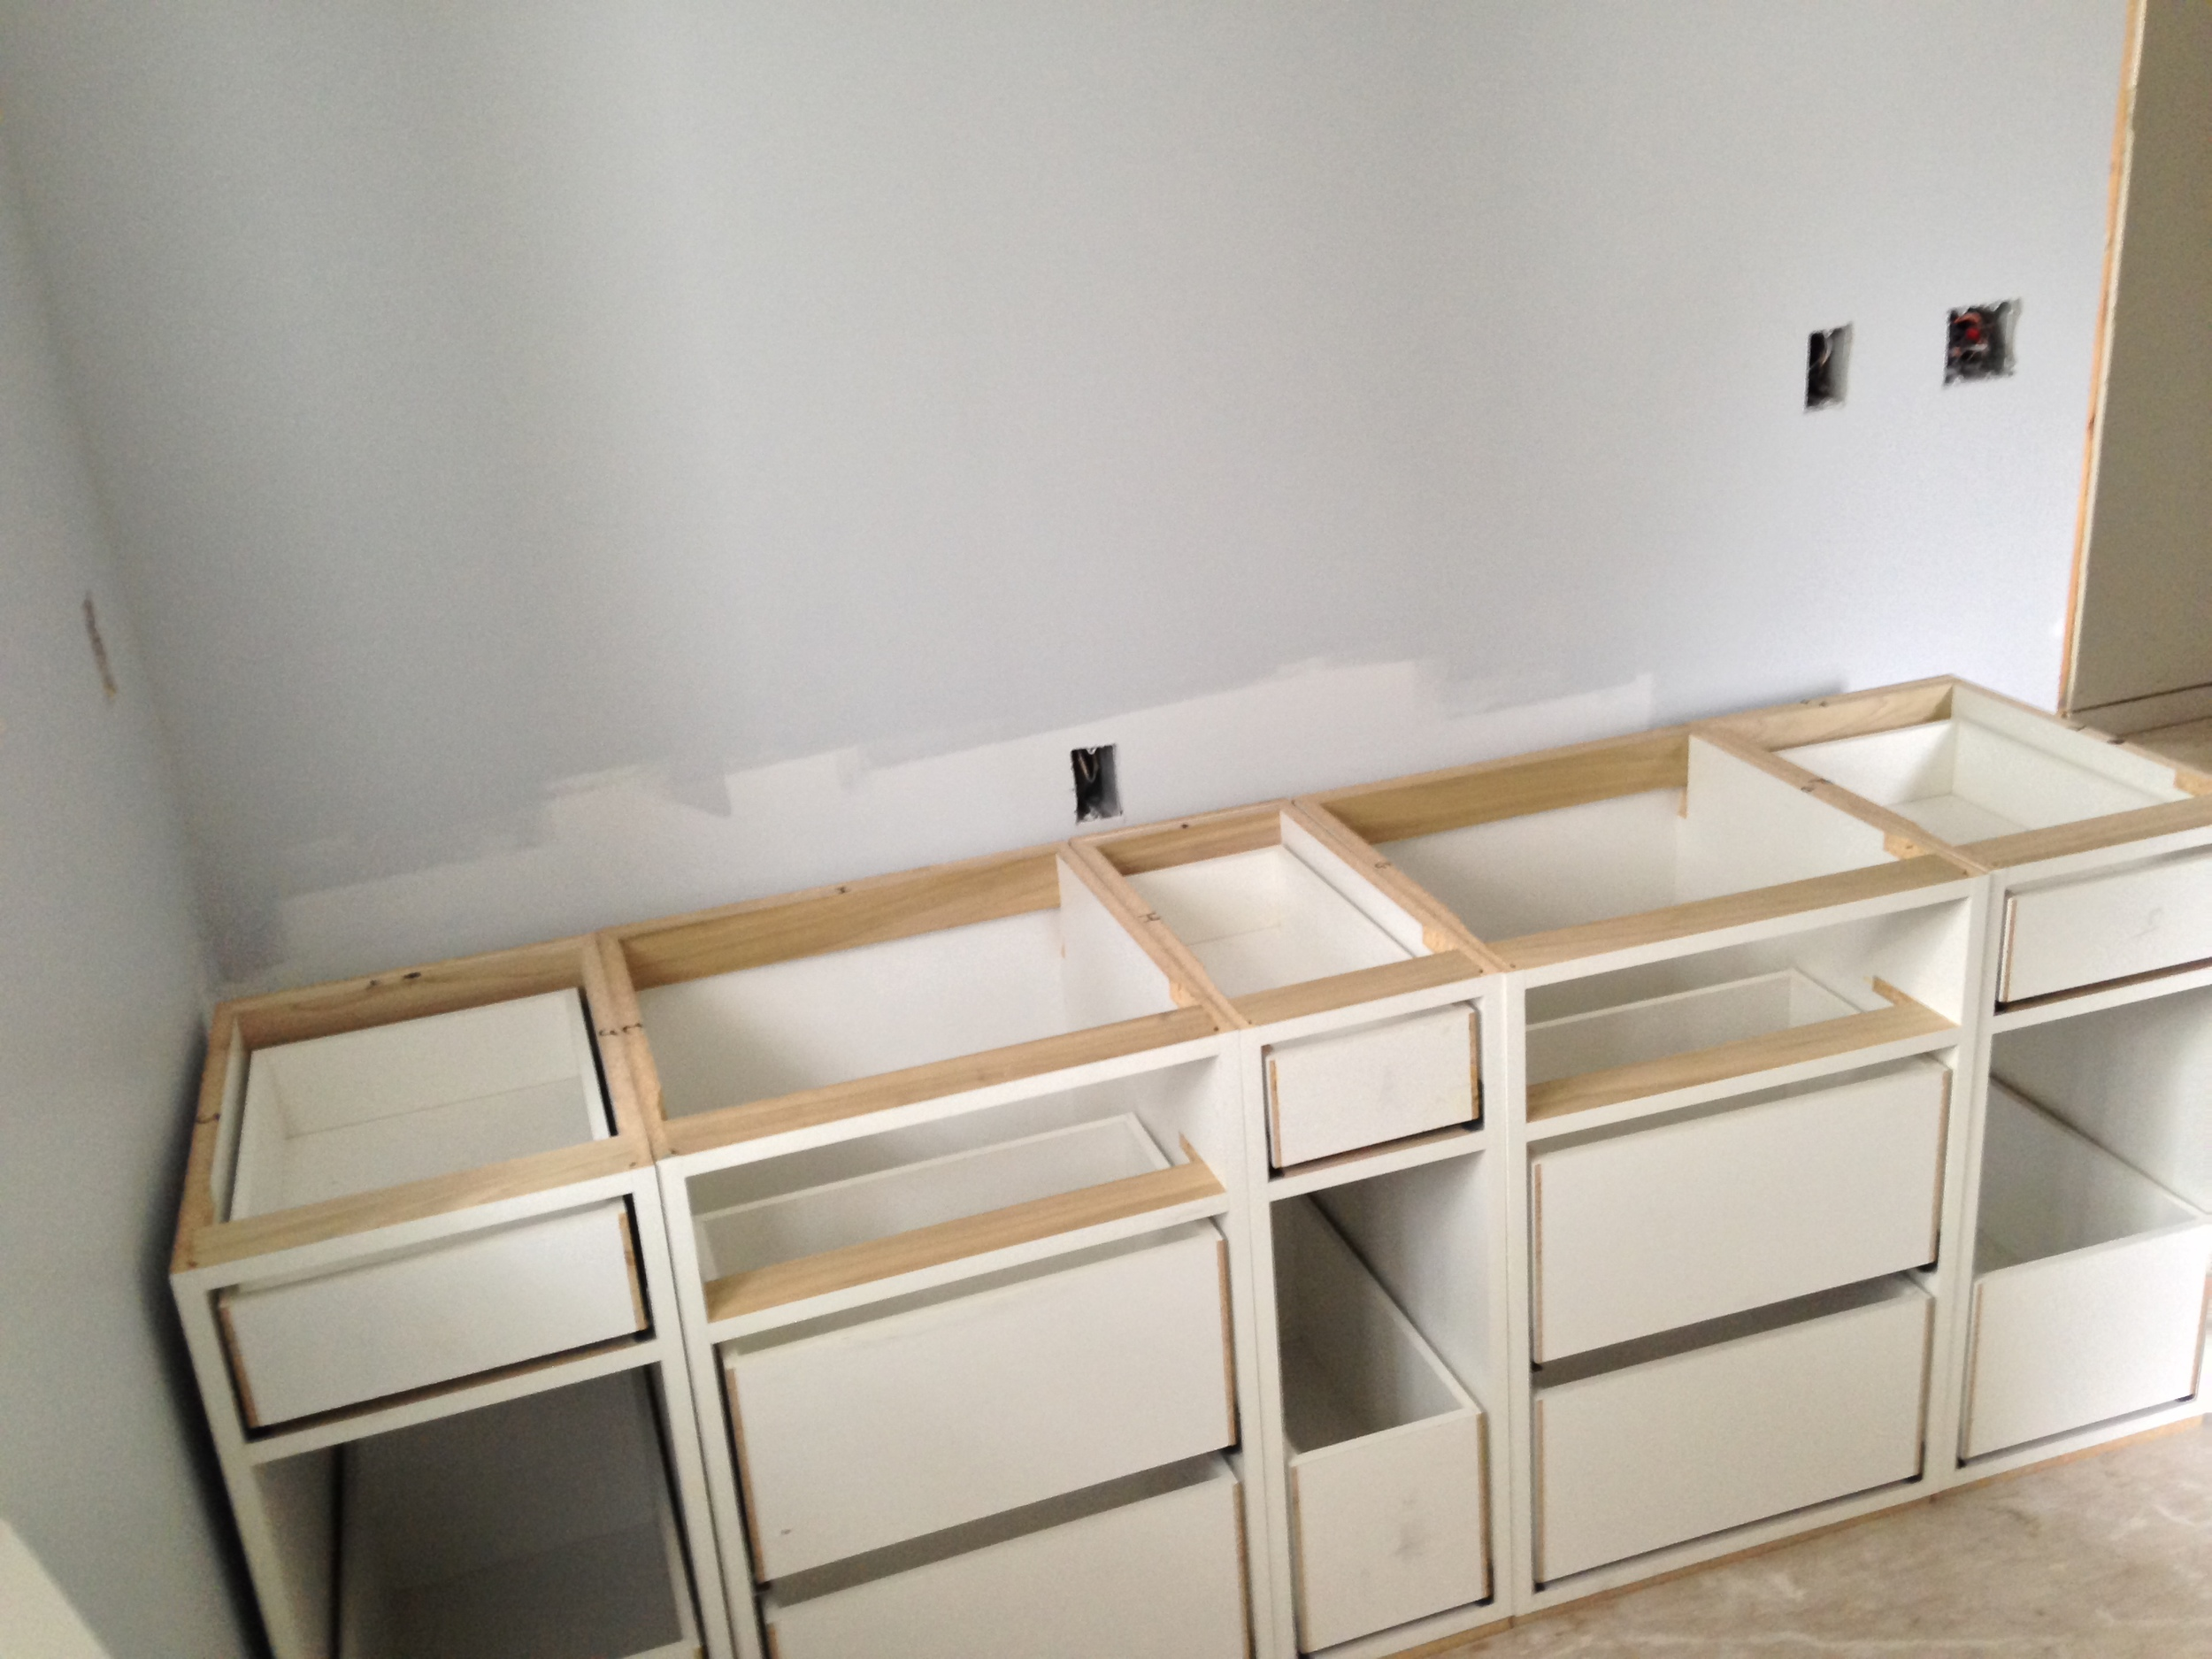 Vanity for the kids' bath, with 2 sinks, 2 pull out hampers and pull out garbage